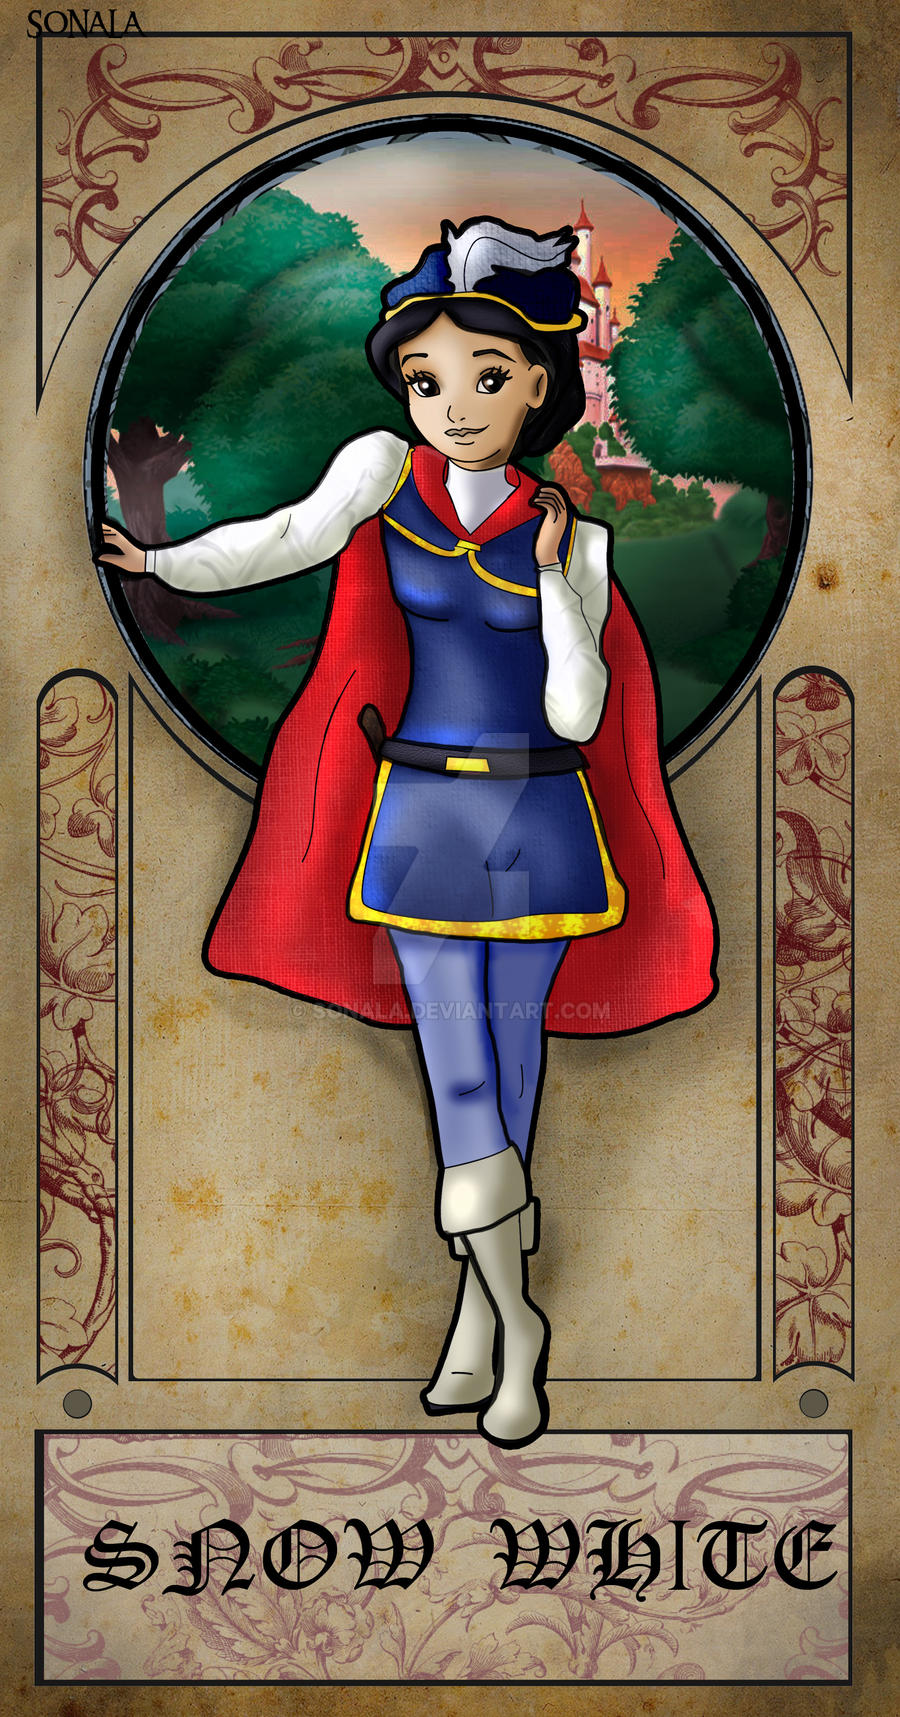 Prince Snow white by Sonala